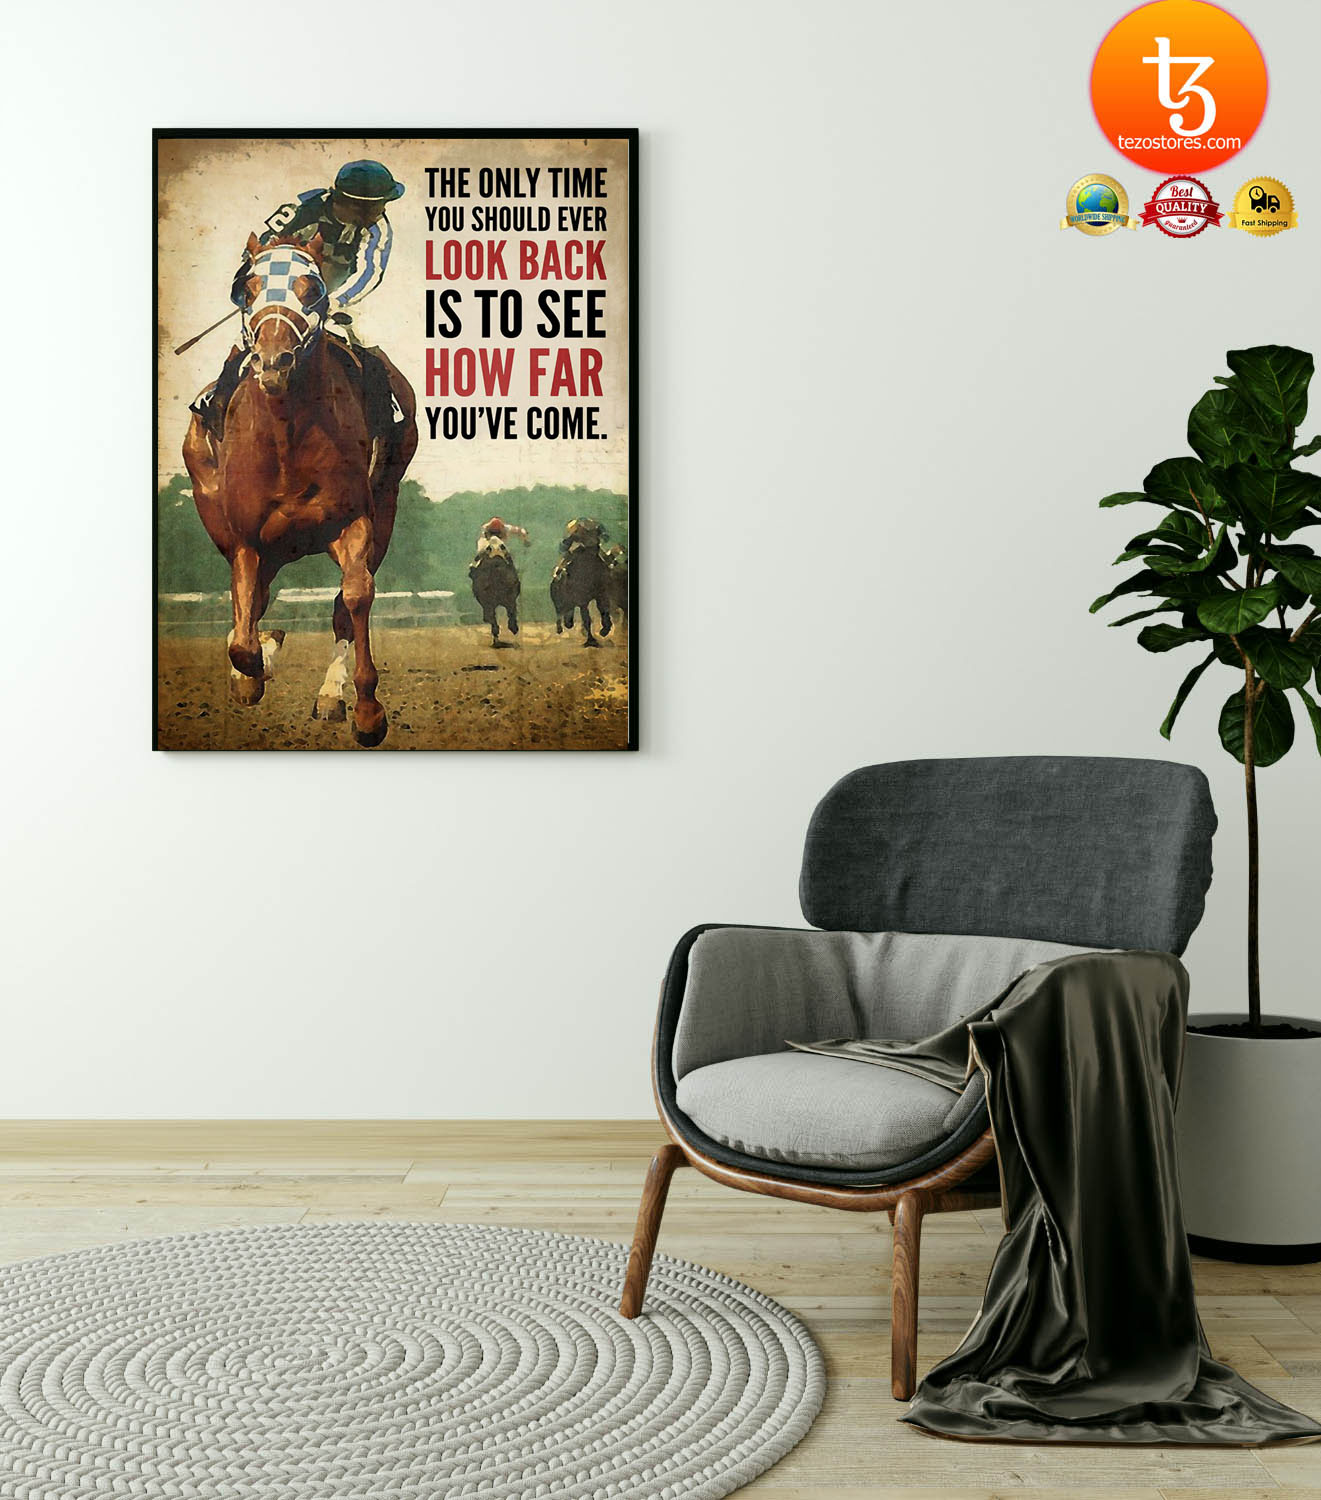 Horse racing The only time you should ever look back is to see how far youve come poster6